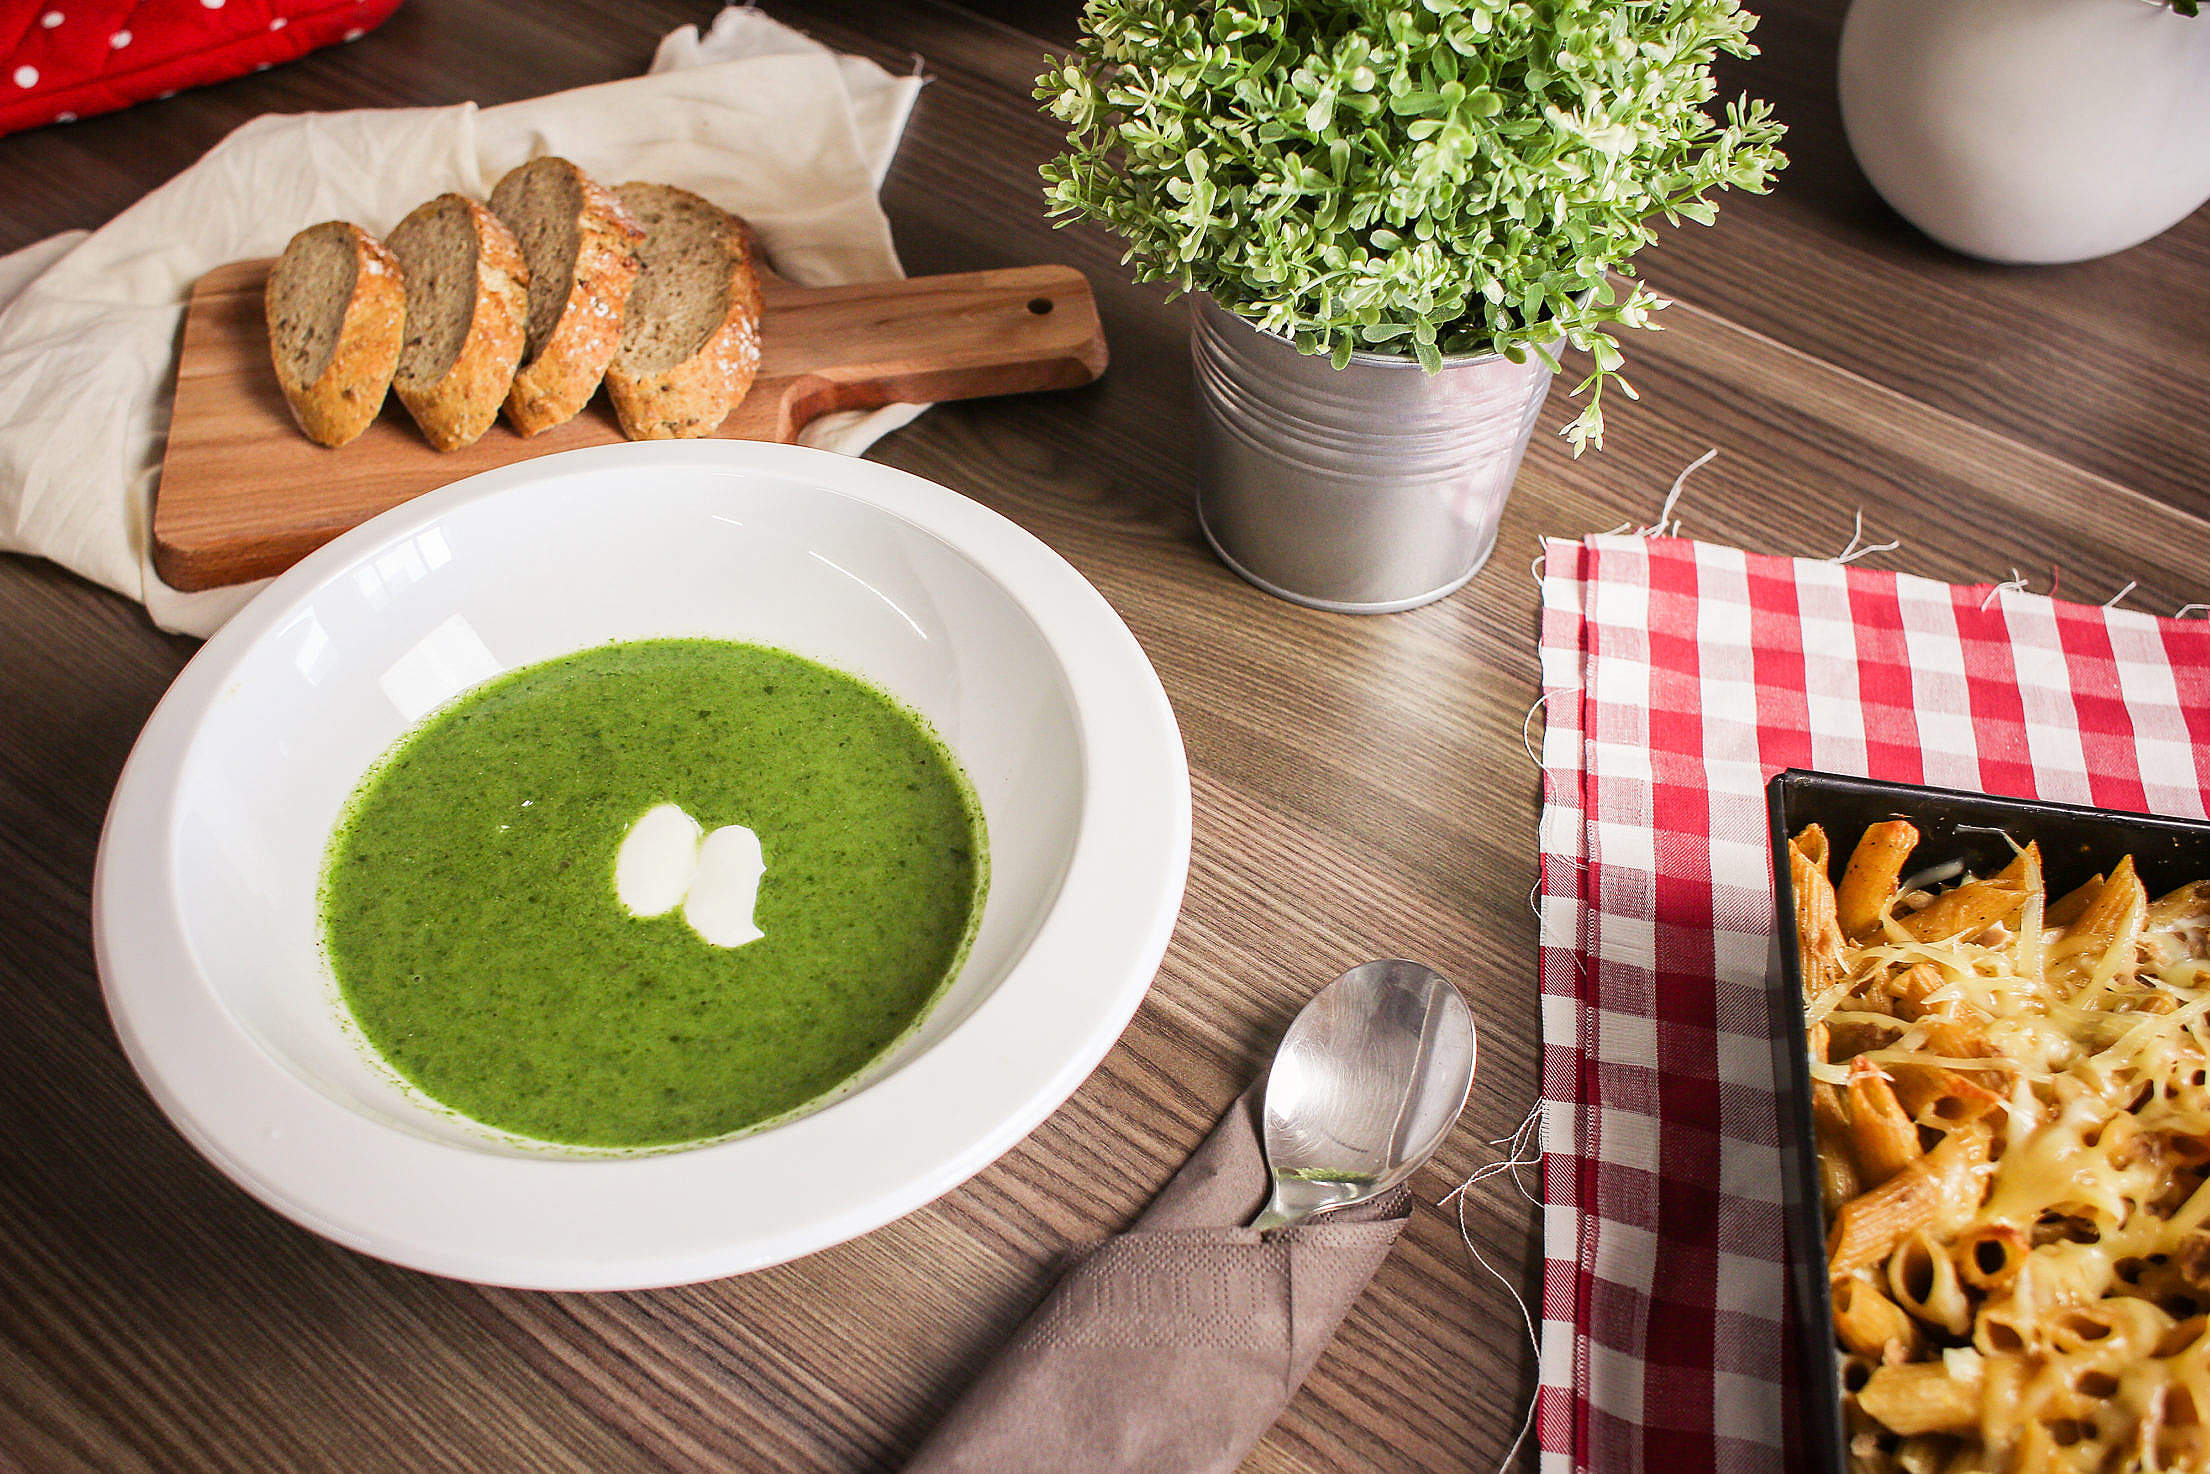 Spinach Soup with Slices of Bread Free Stock Photo